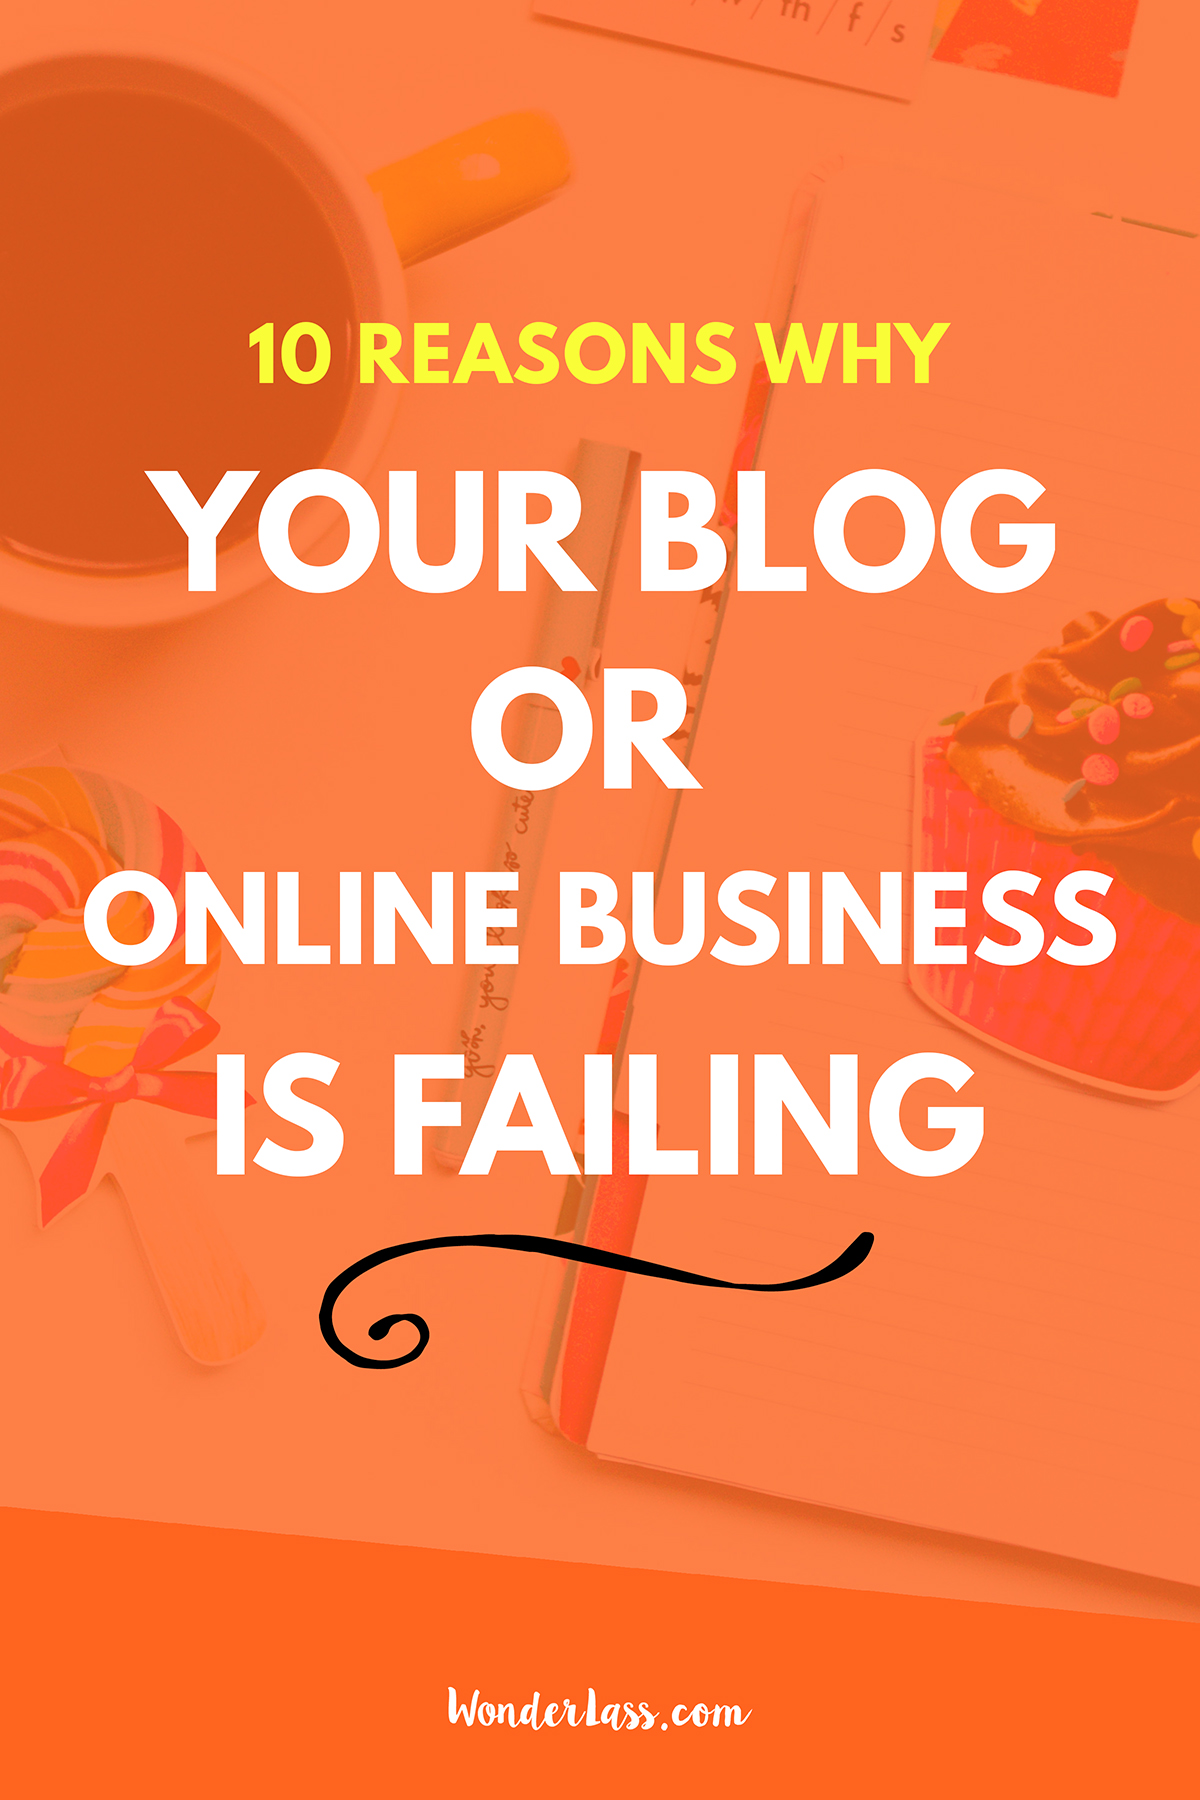 10 Reasons Why Your Blog or Online Business is Failing (And What to Do About it!) | Wonderlass